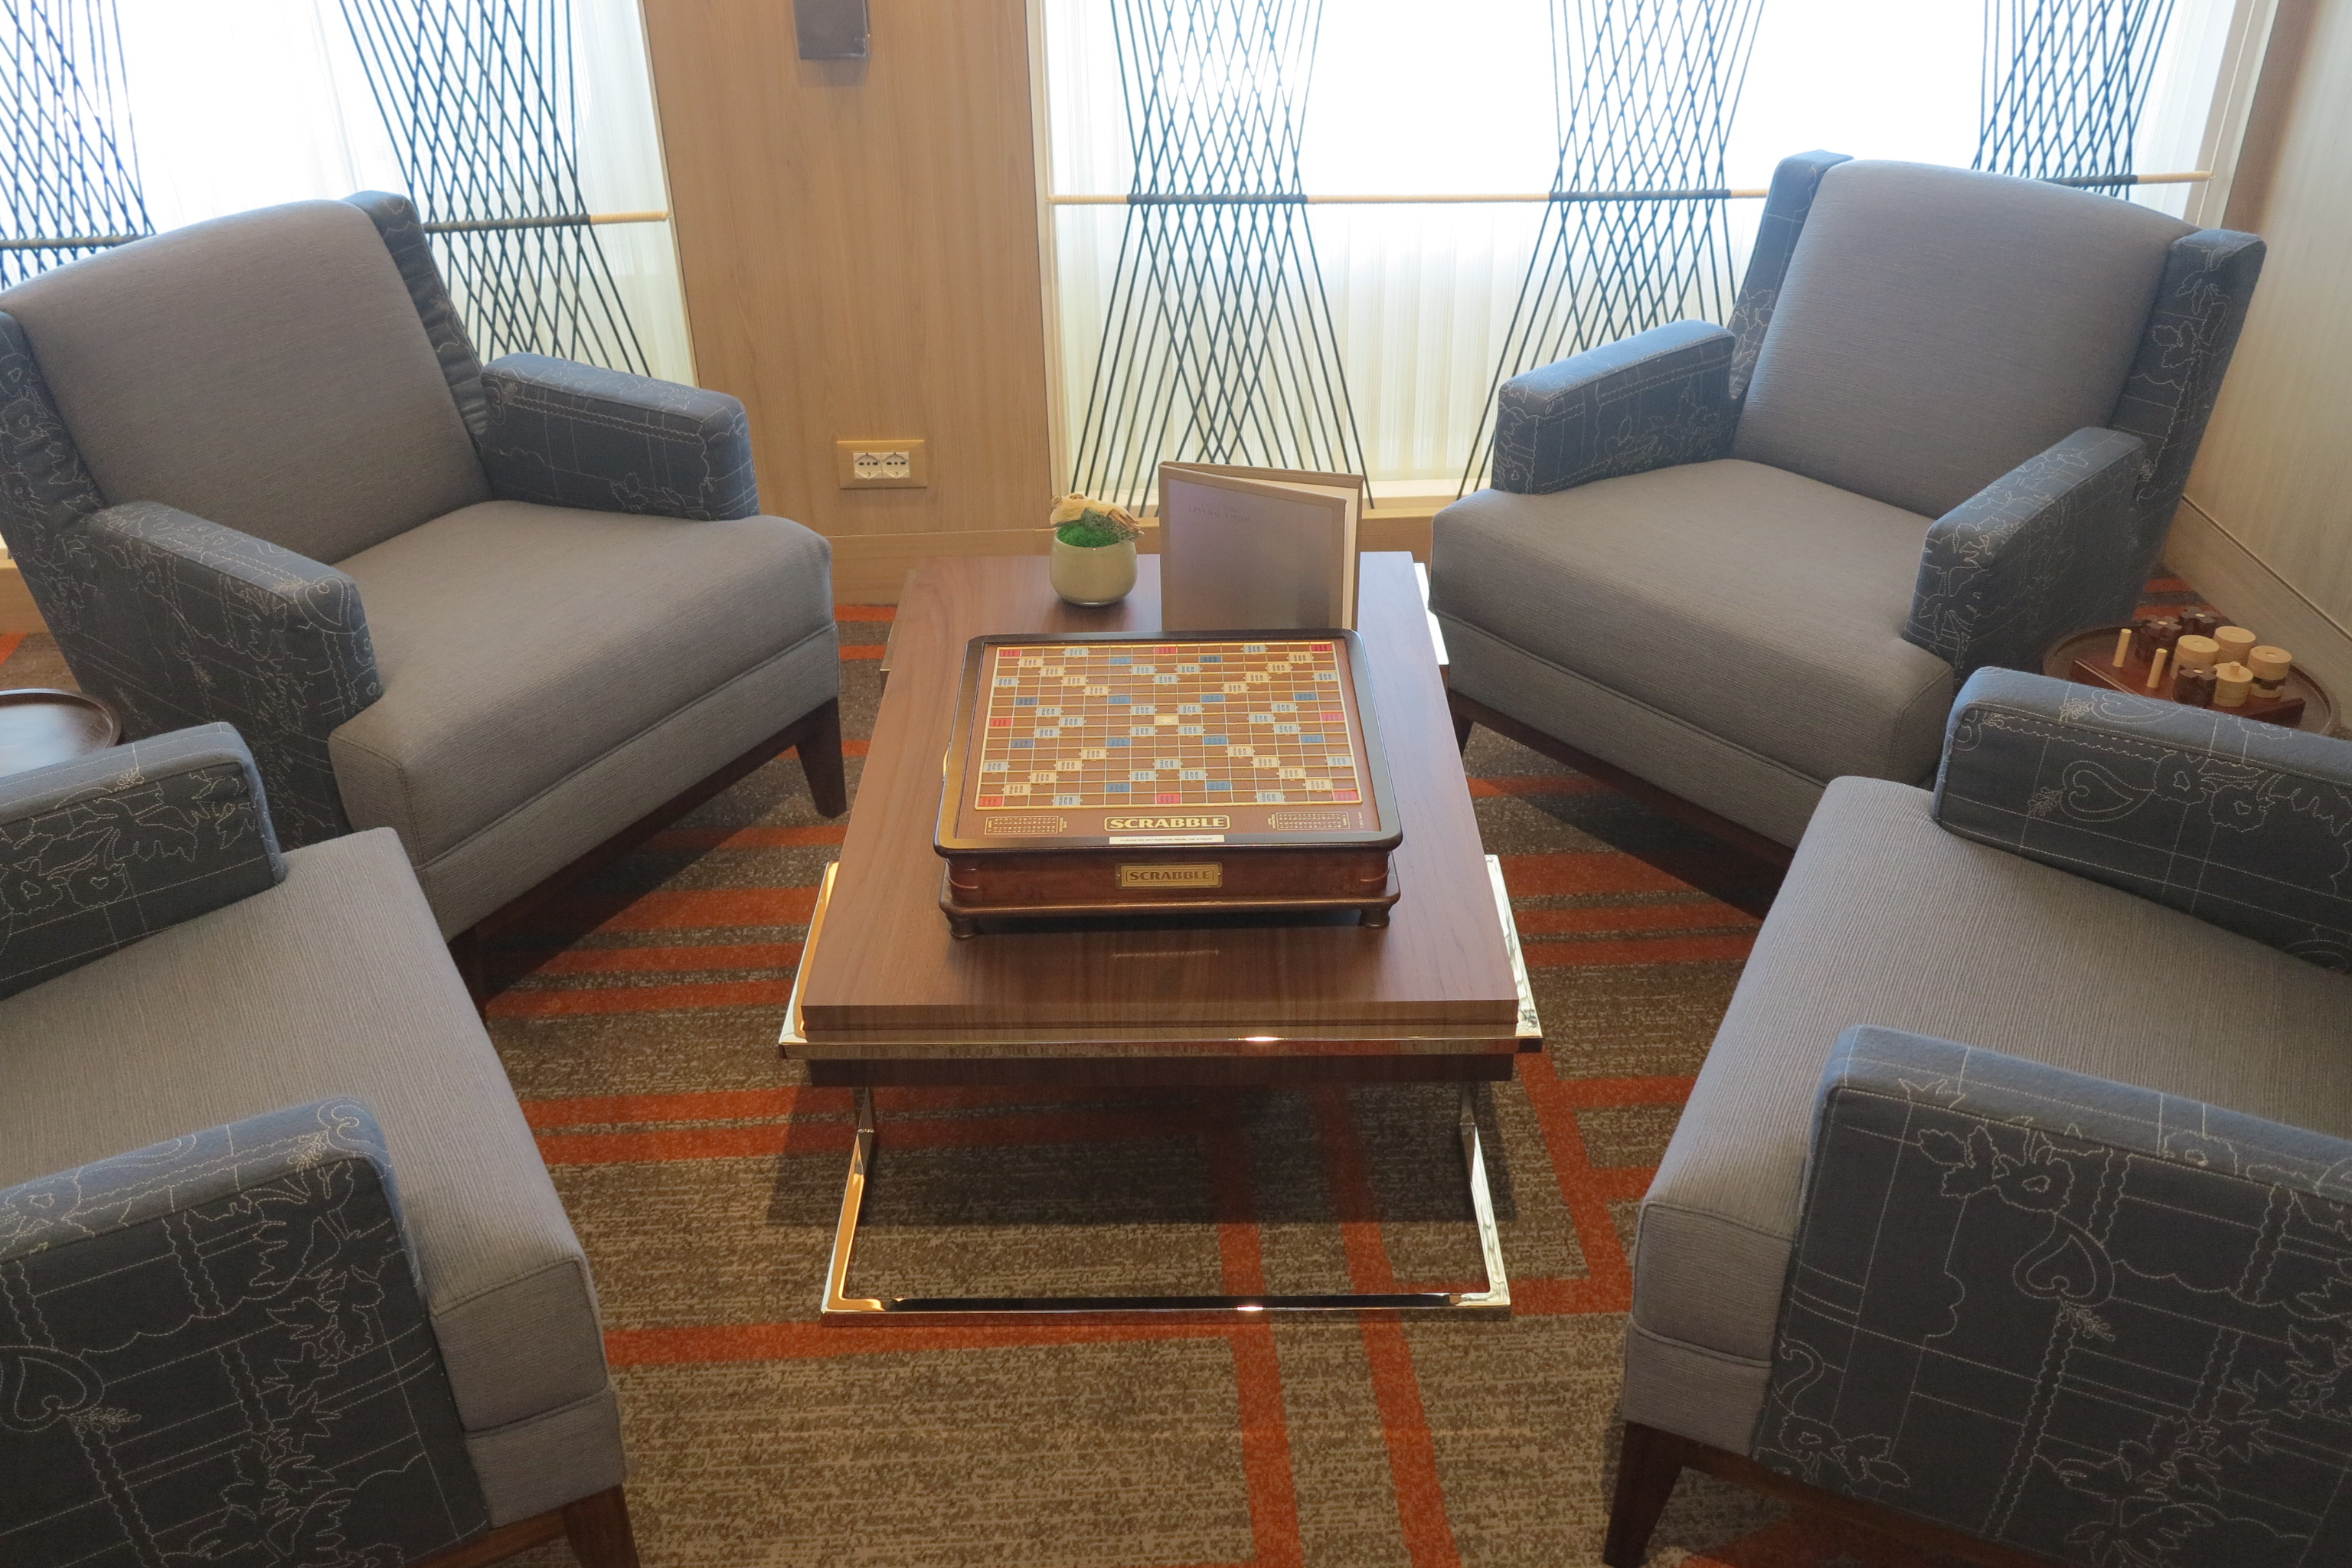 Anyone for Scrabble?: Board and electronic games are available in the Living Room